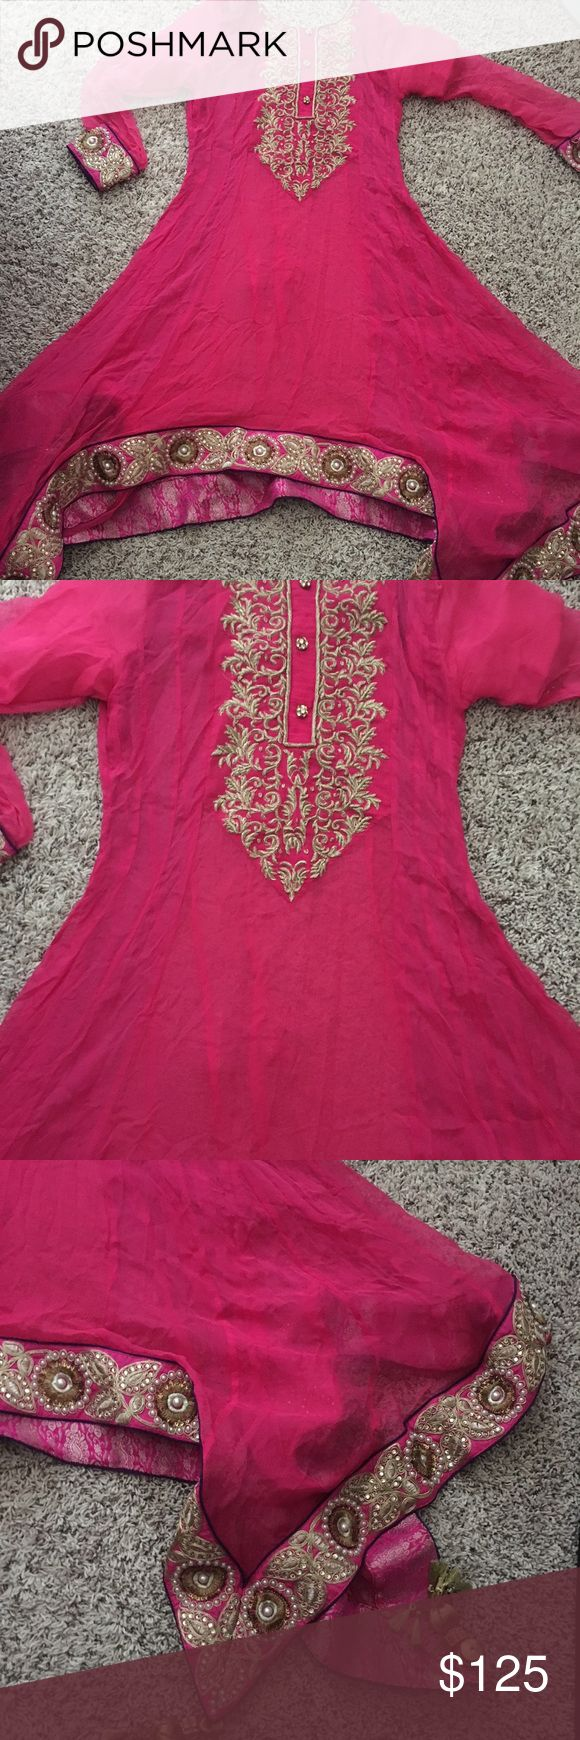 Shalwar Kameez Beautiful 4 piece outfit. Worn once. Chest size is 32. Please message with any questions. Dresses